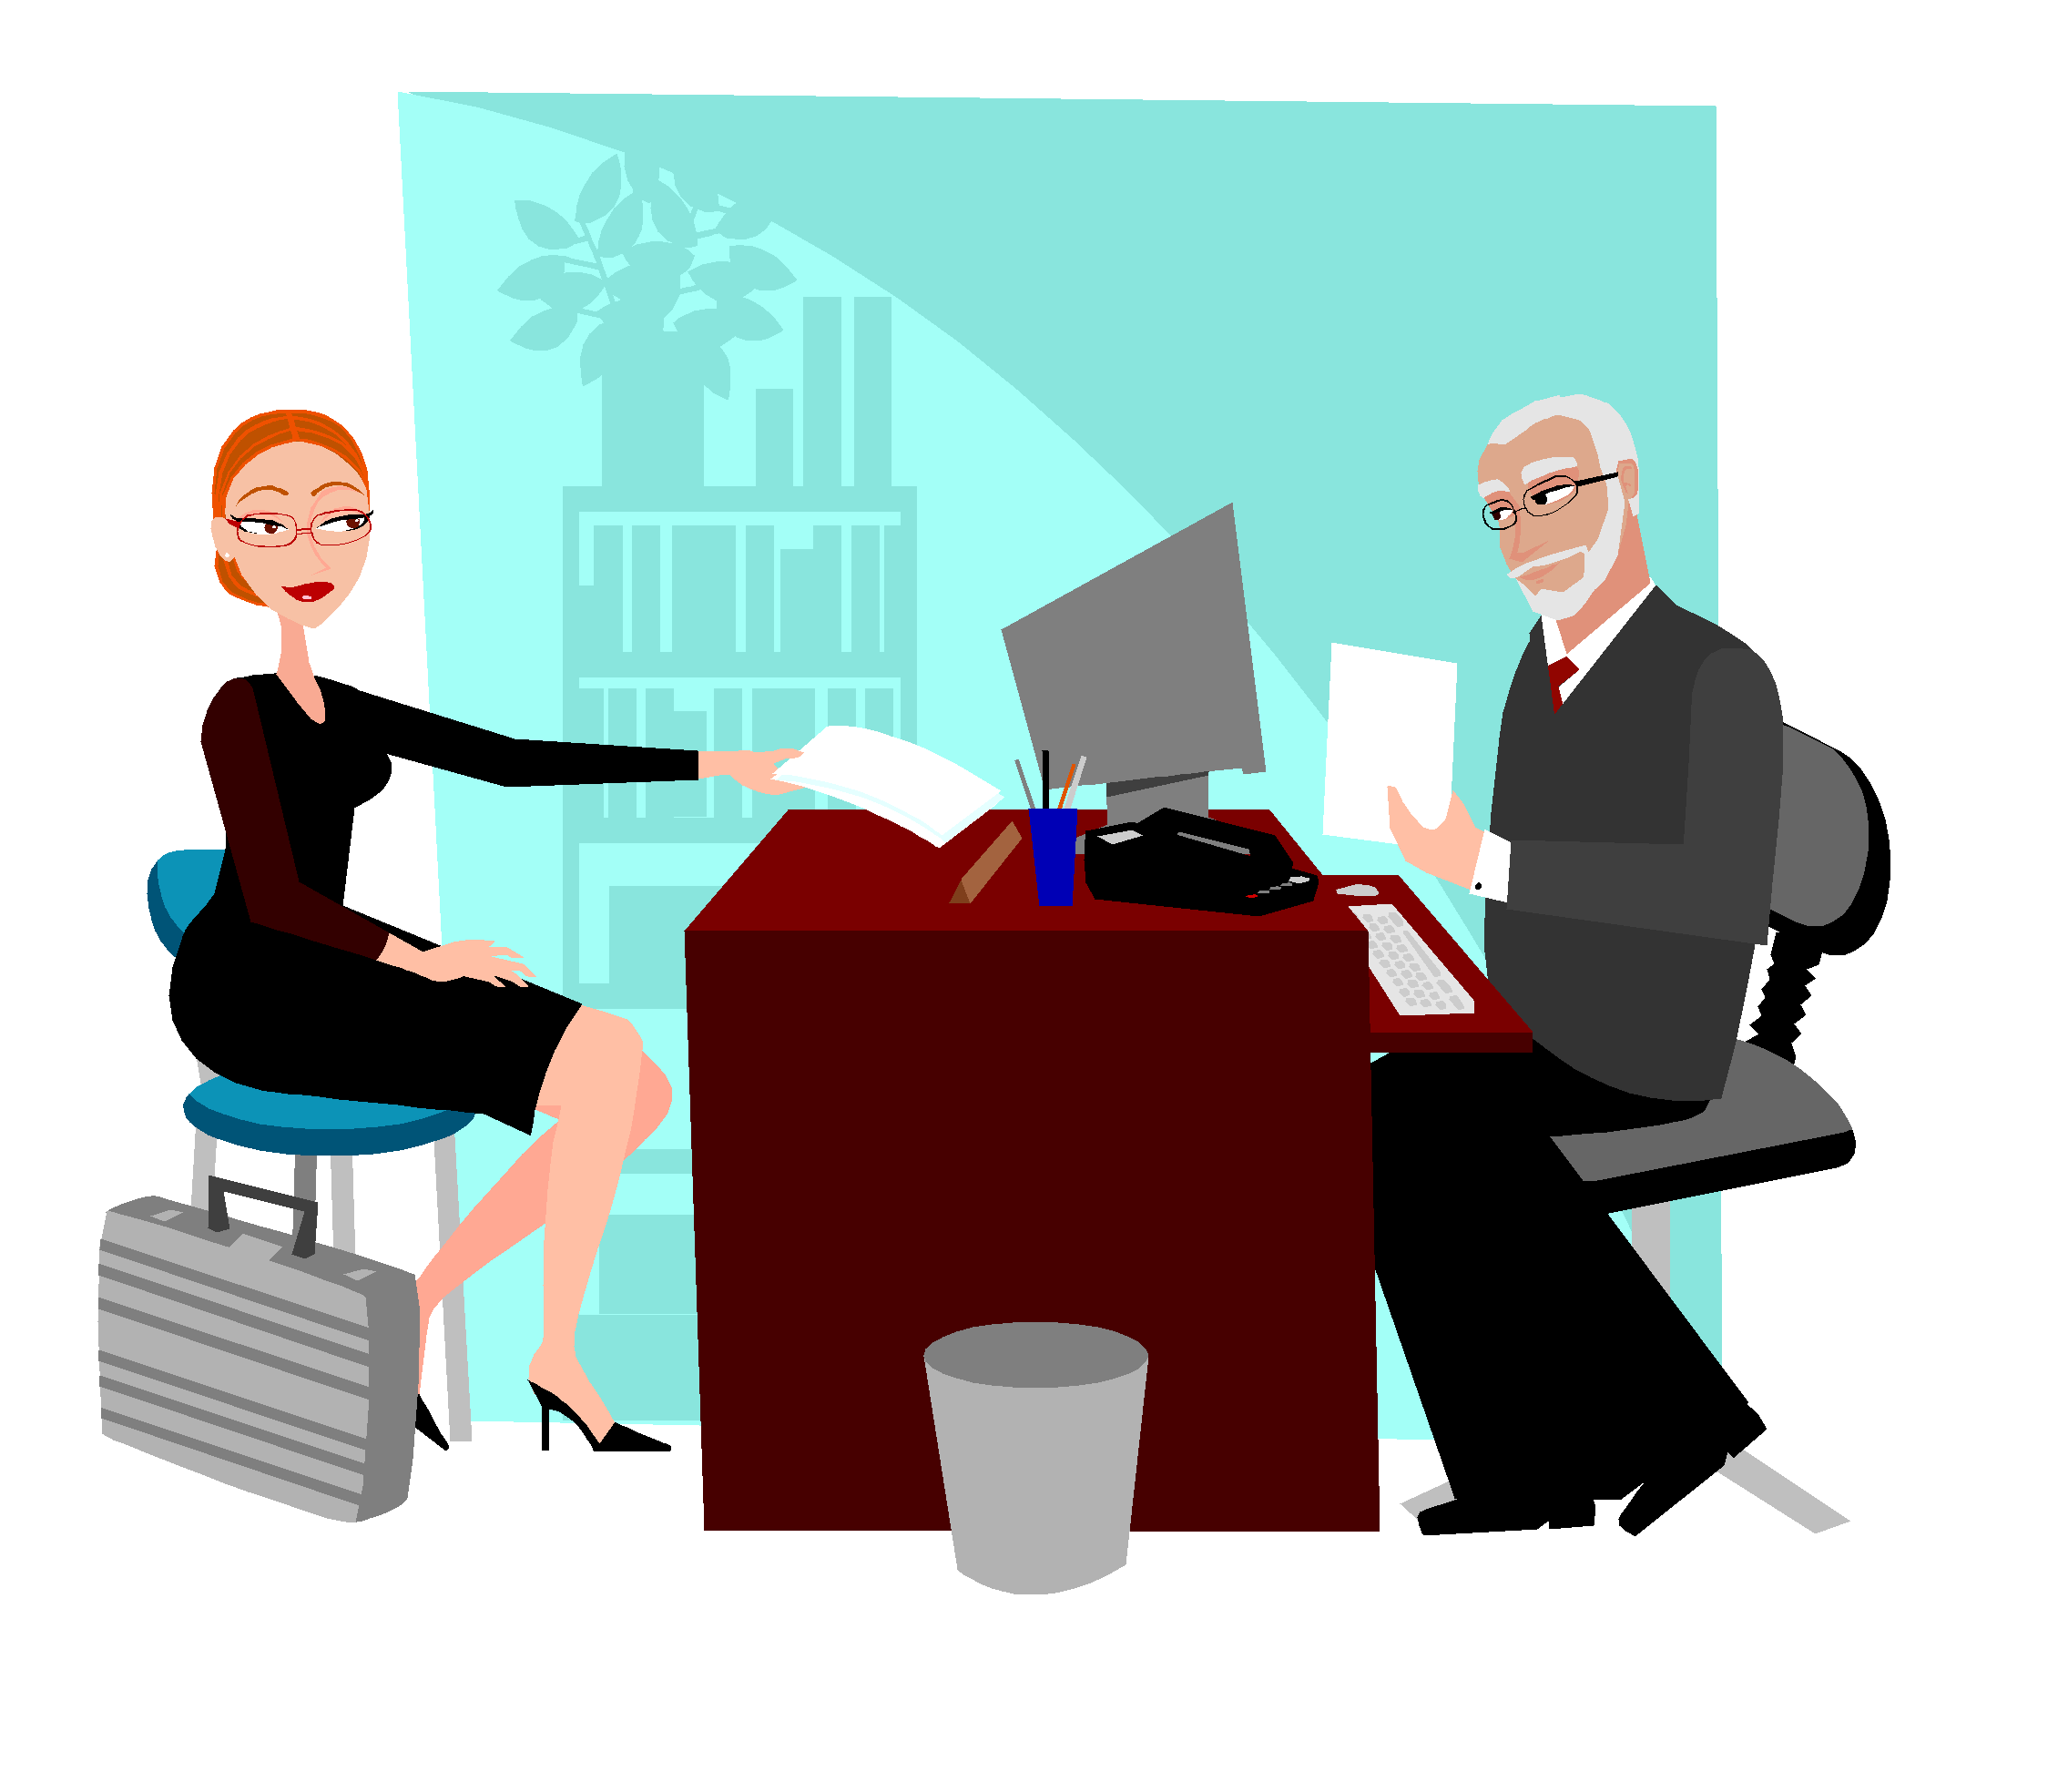 Conversation clipart employer. How to conduct an